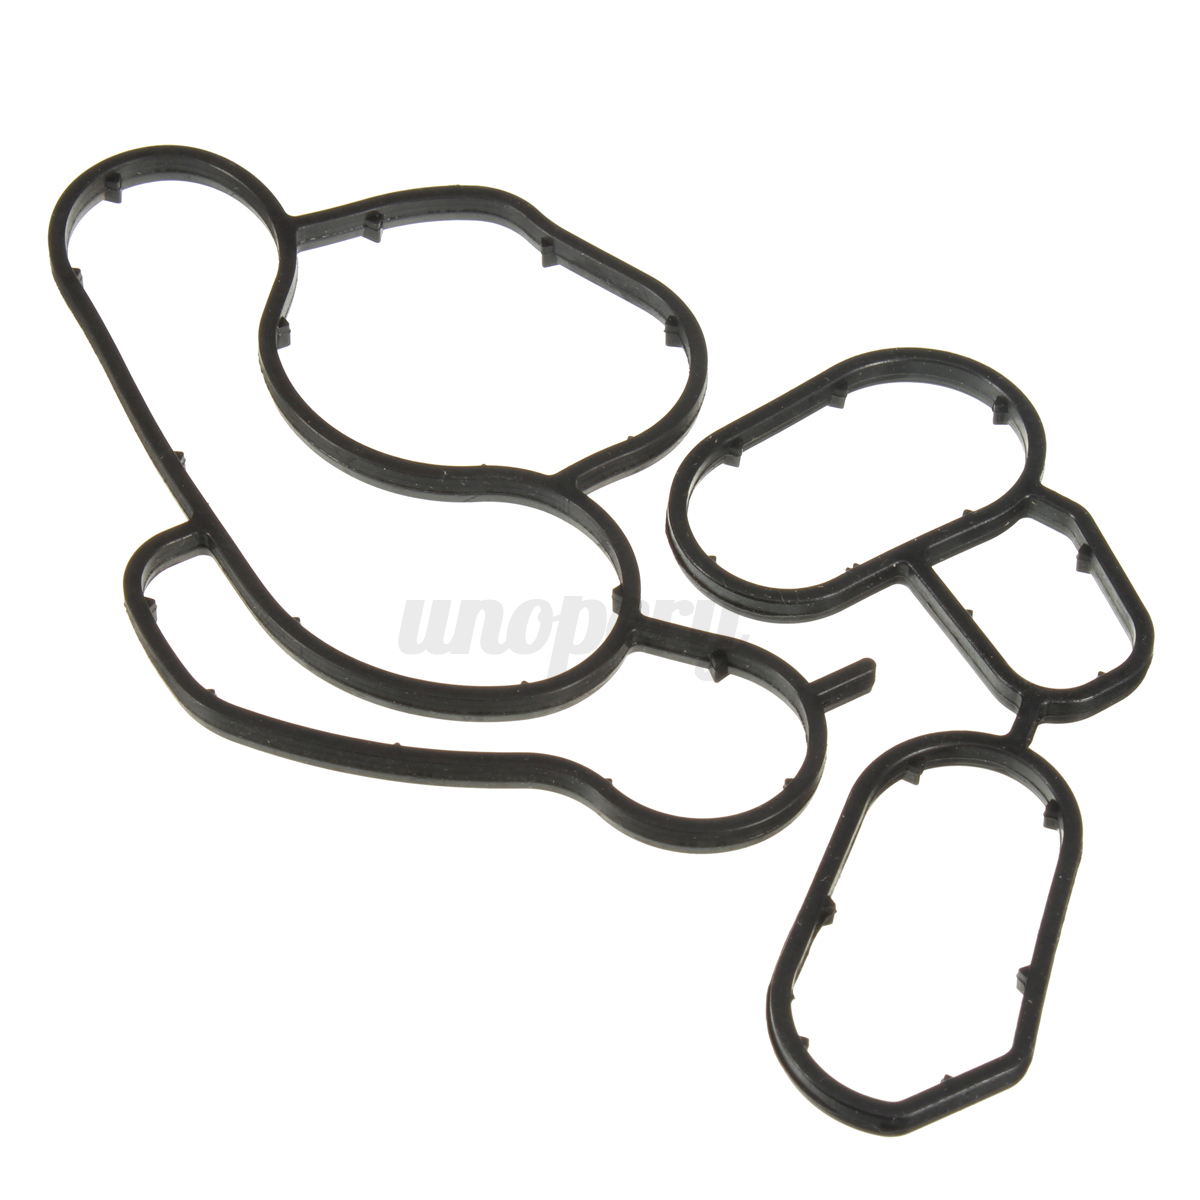 Oil Filter Housing Set Seal Gasket For Bmw E90 E46 E60 2